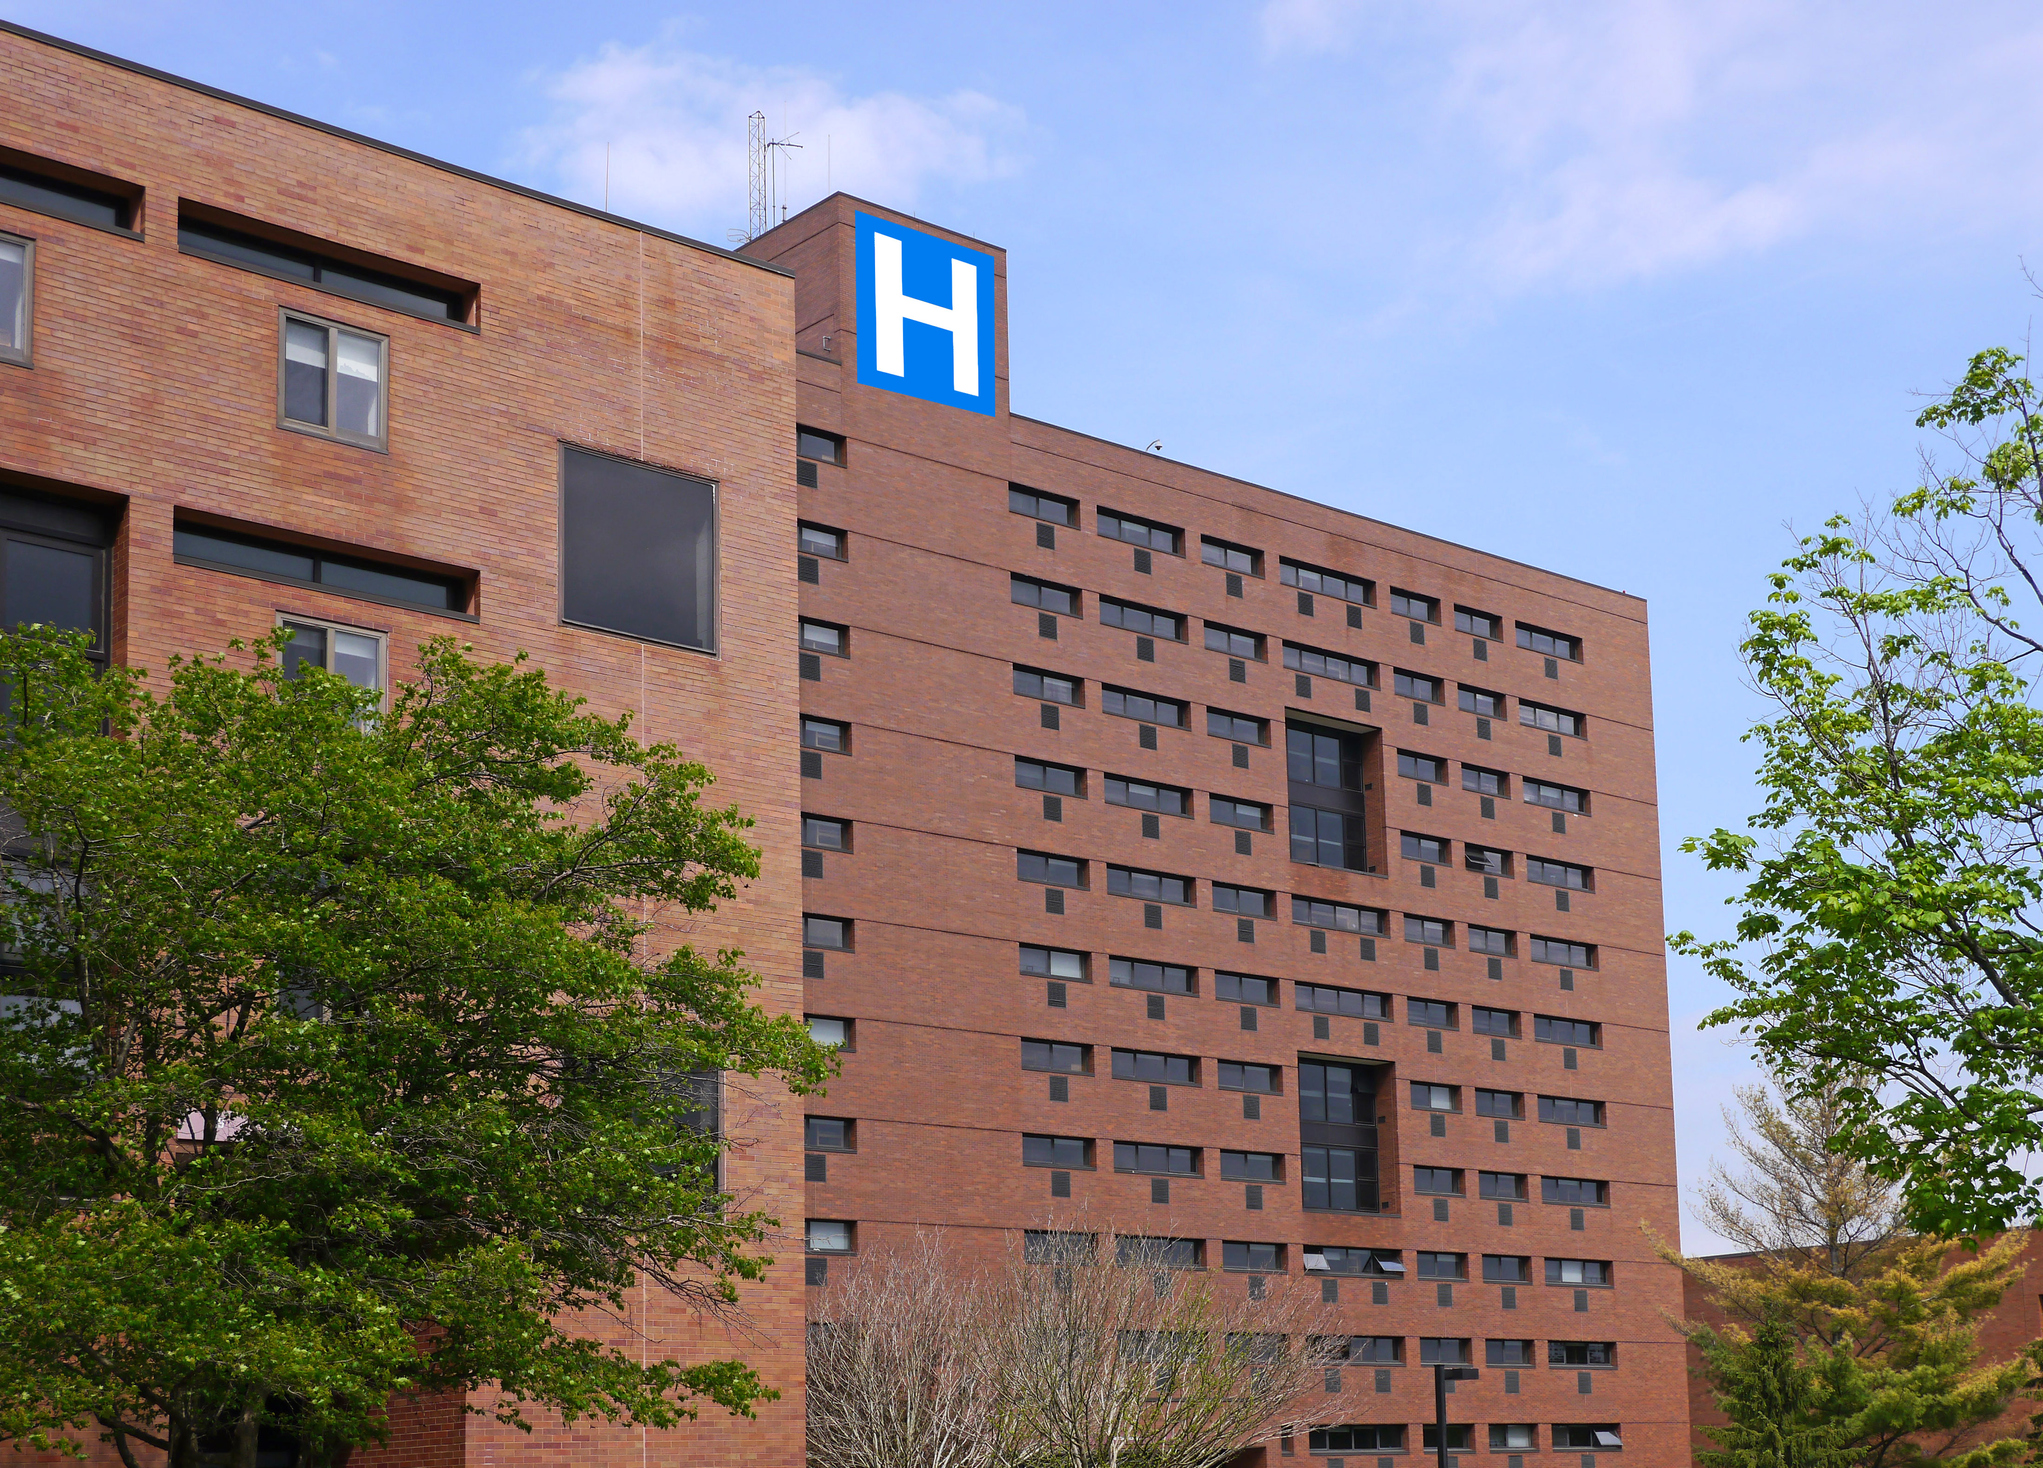 Exterior of a large brick hospital with 'H' sign